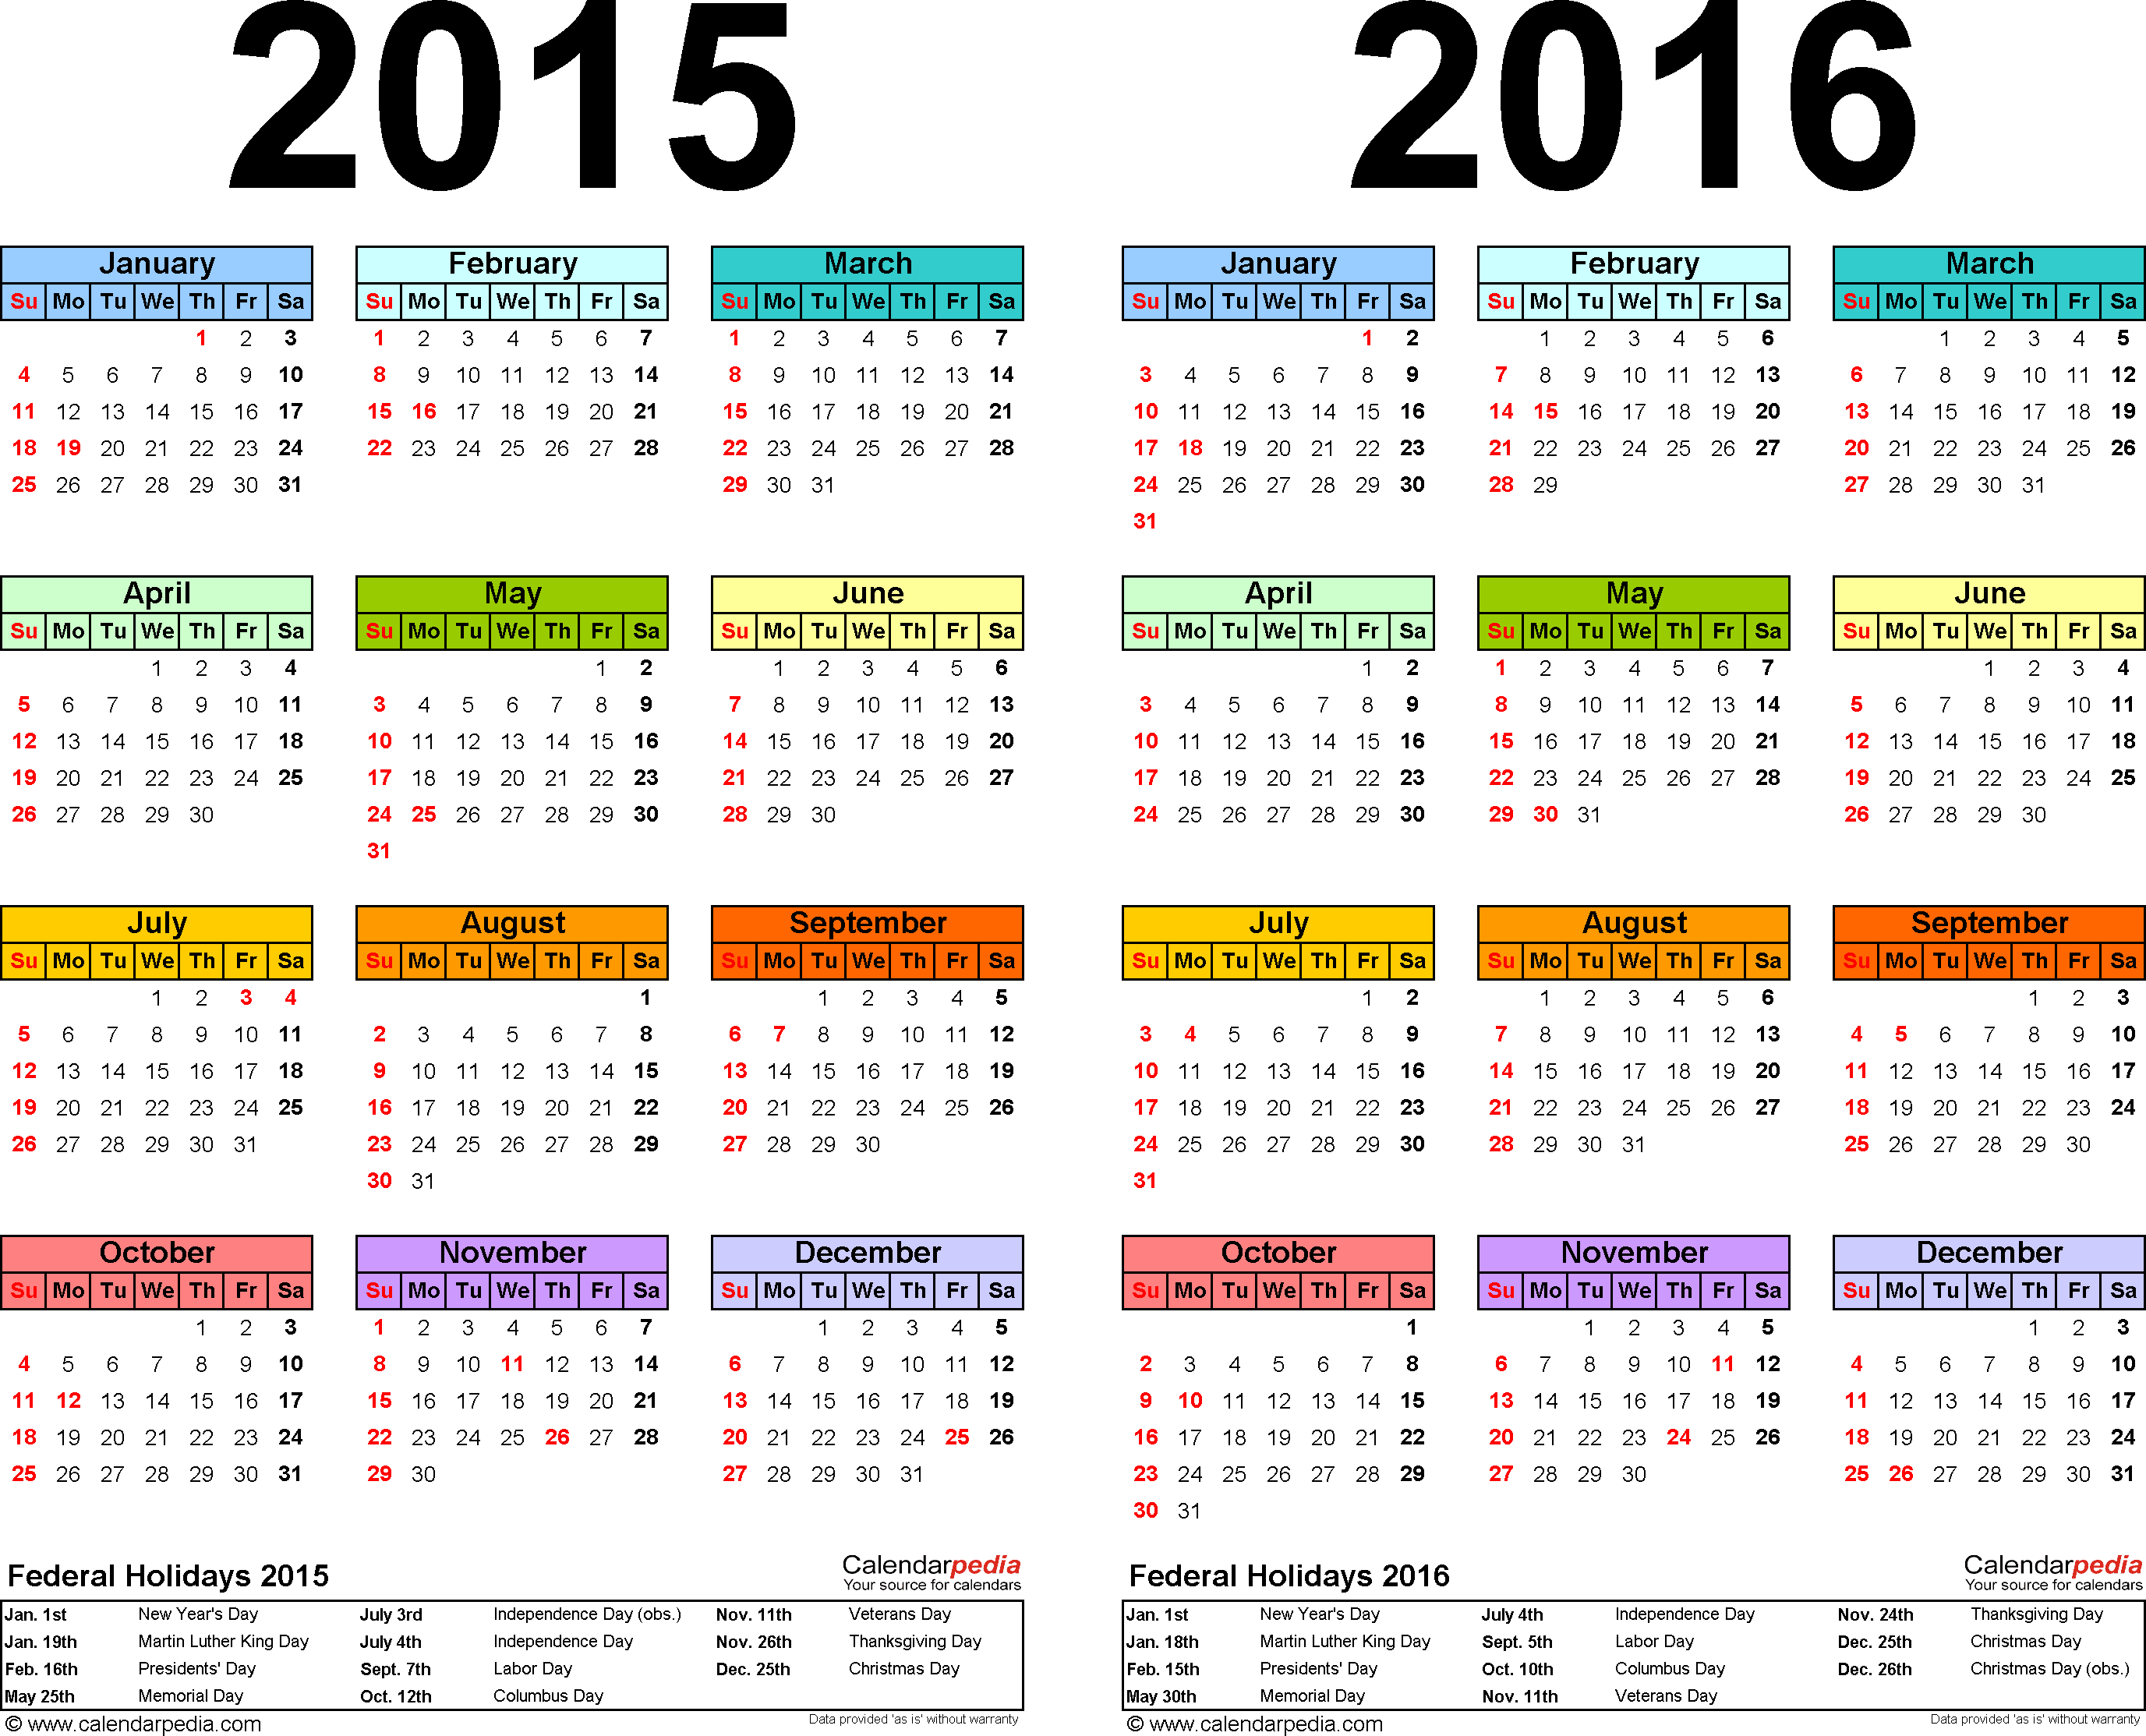 2015 2016 Calendar Free Printable Two Year Pdf Calendars Calendar Printables Calendar Template Printable Calendar 2016